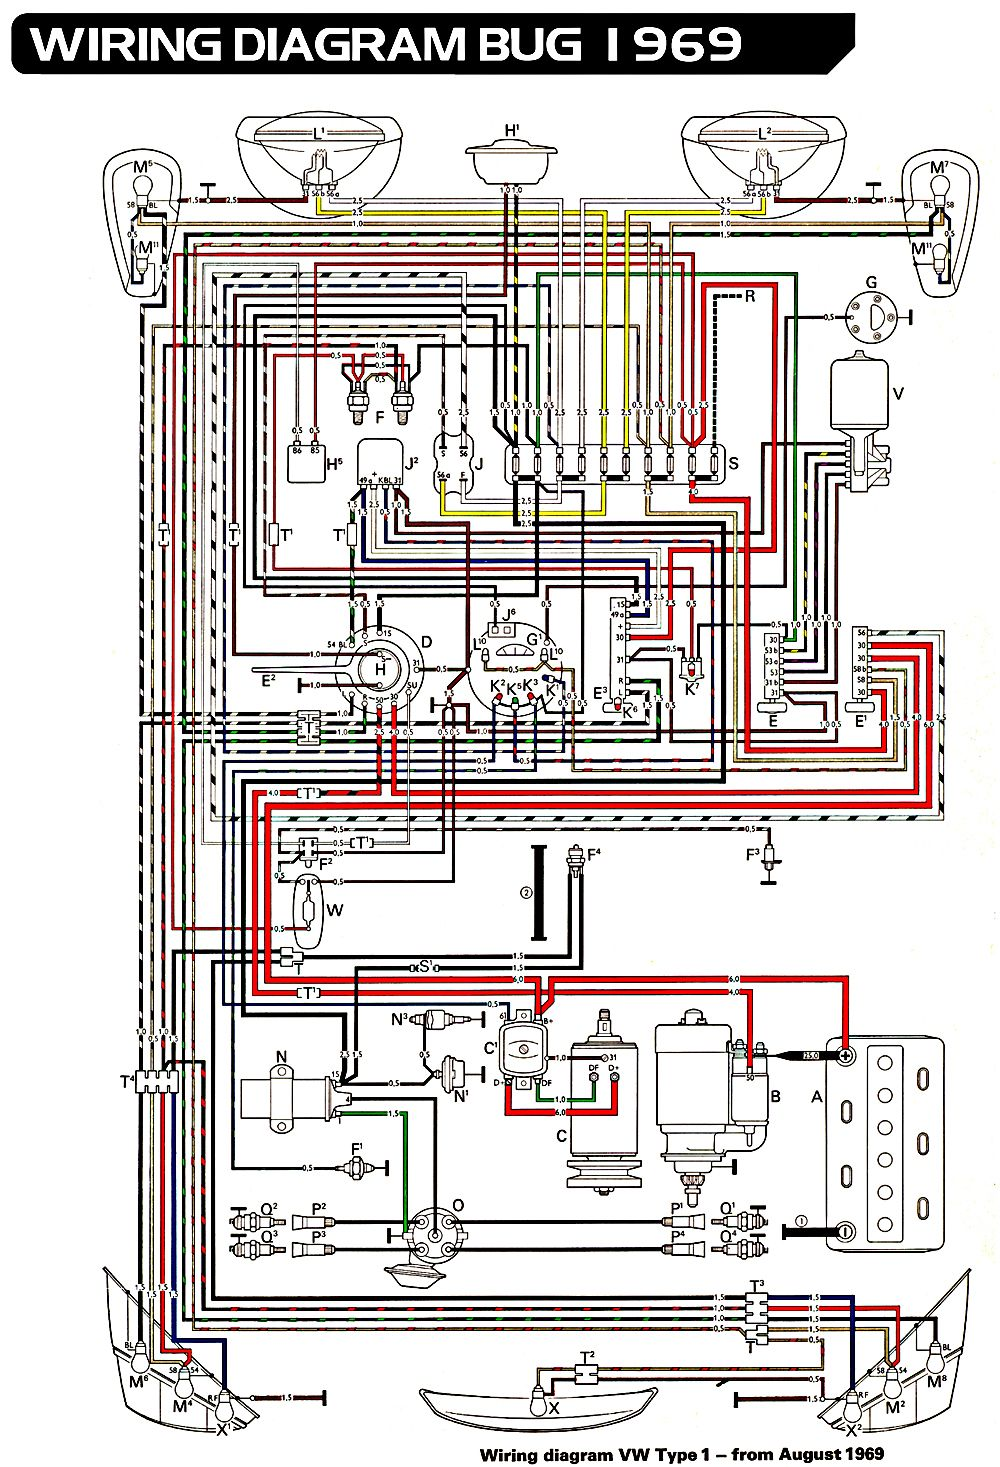 6d75c15875479254f26a32a8499d9044 volkswagen beetle wiring diagram 1966 vw beetle wiring Simple Electrical Wiring Diagrams at readyjetset.co